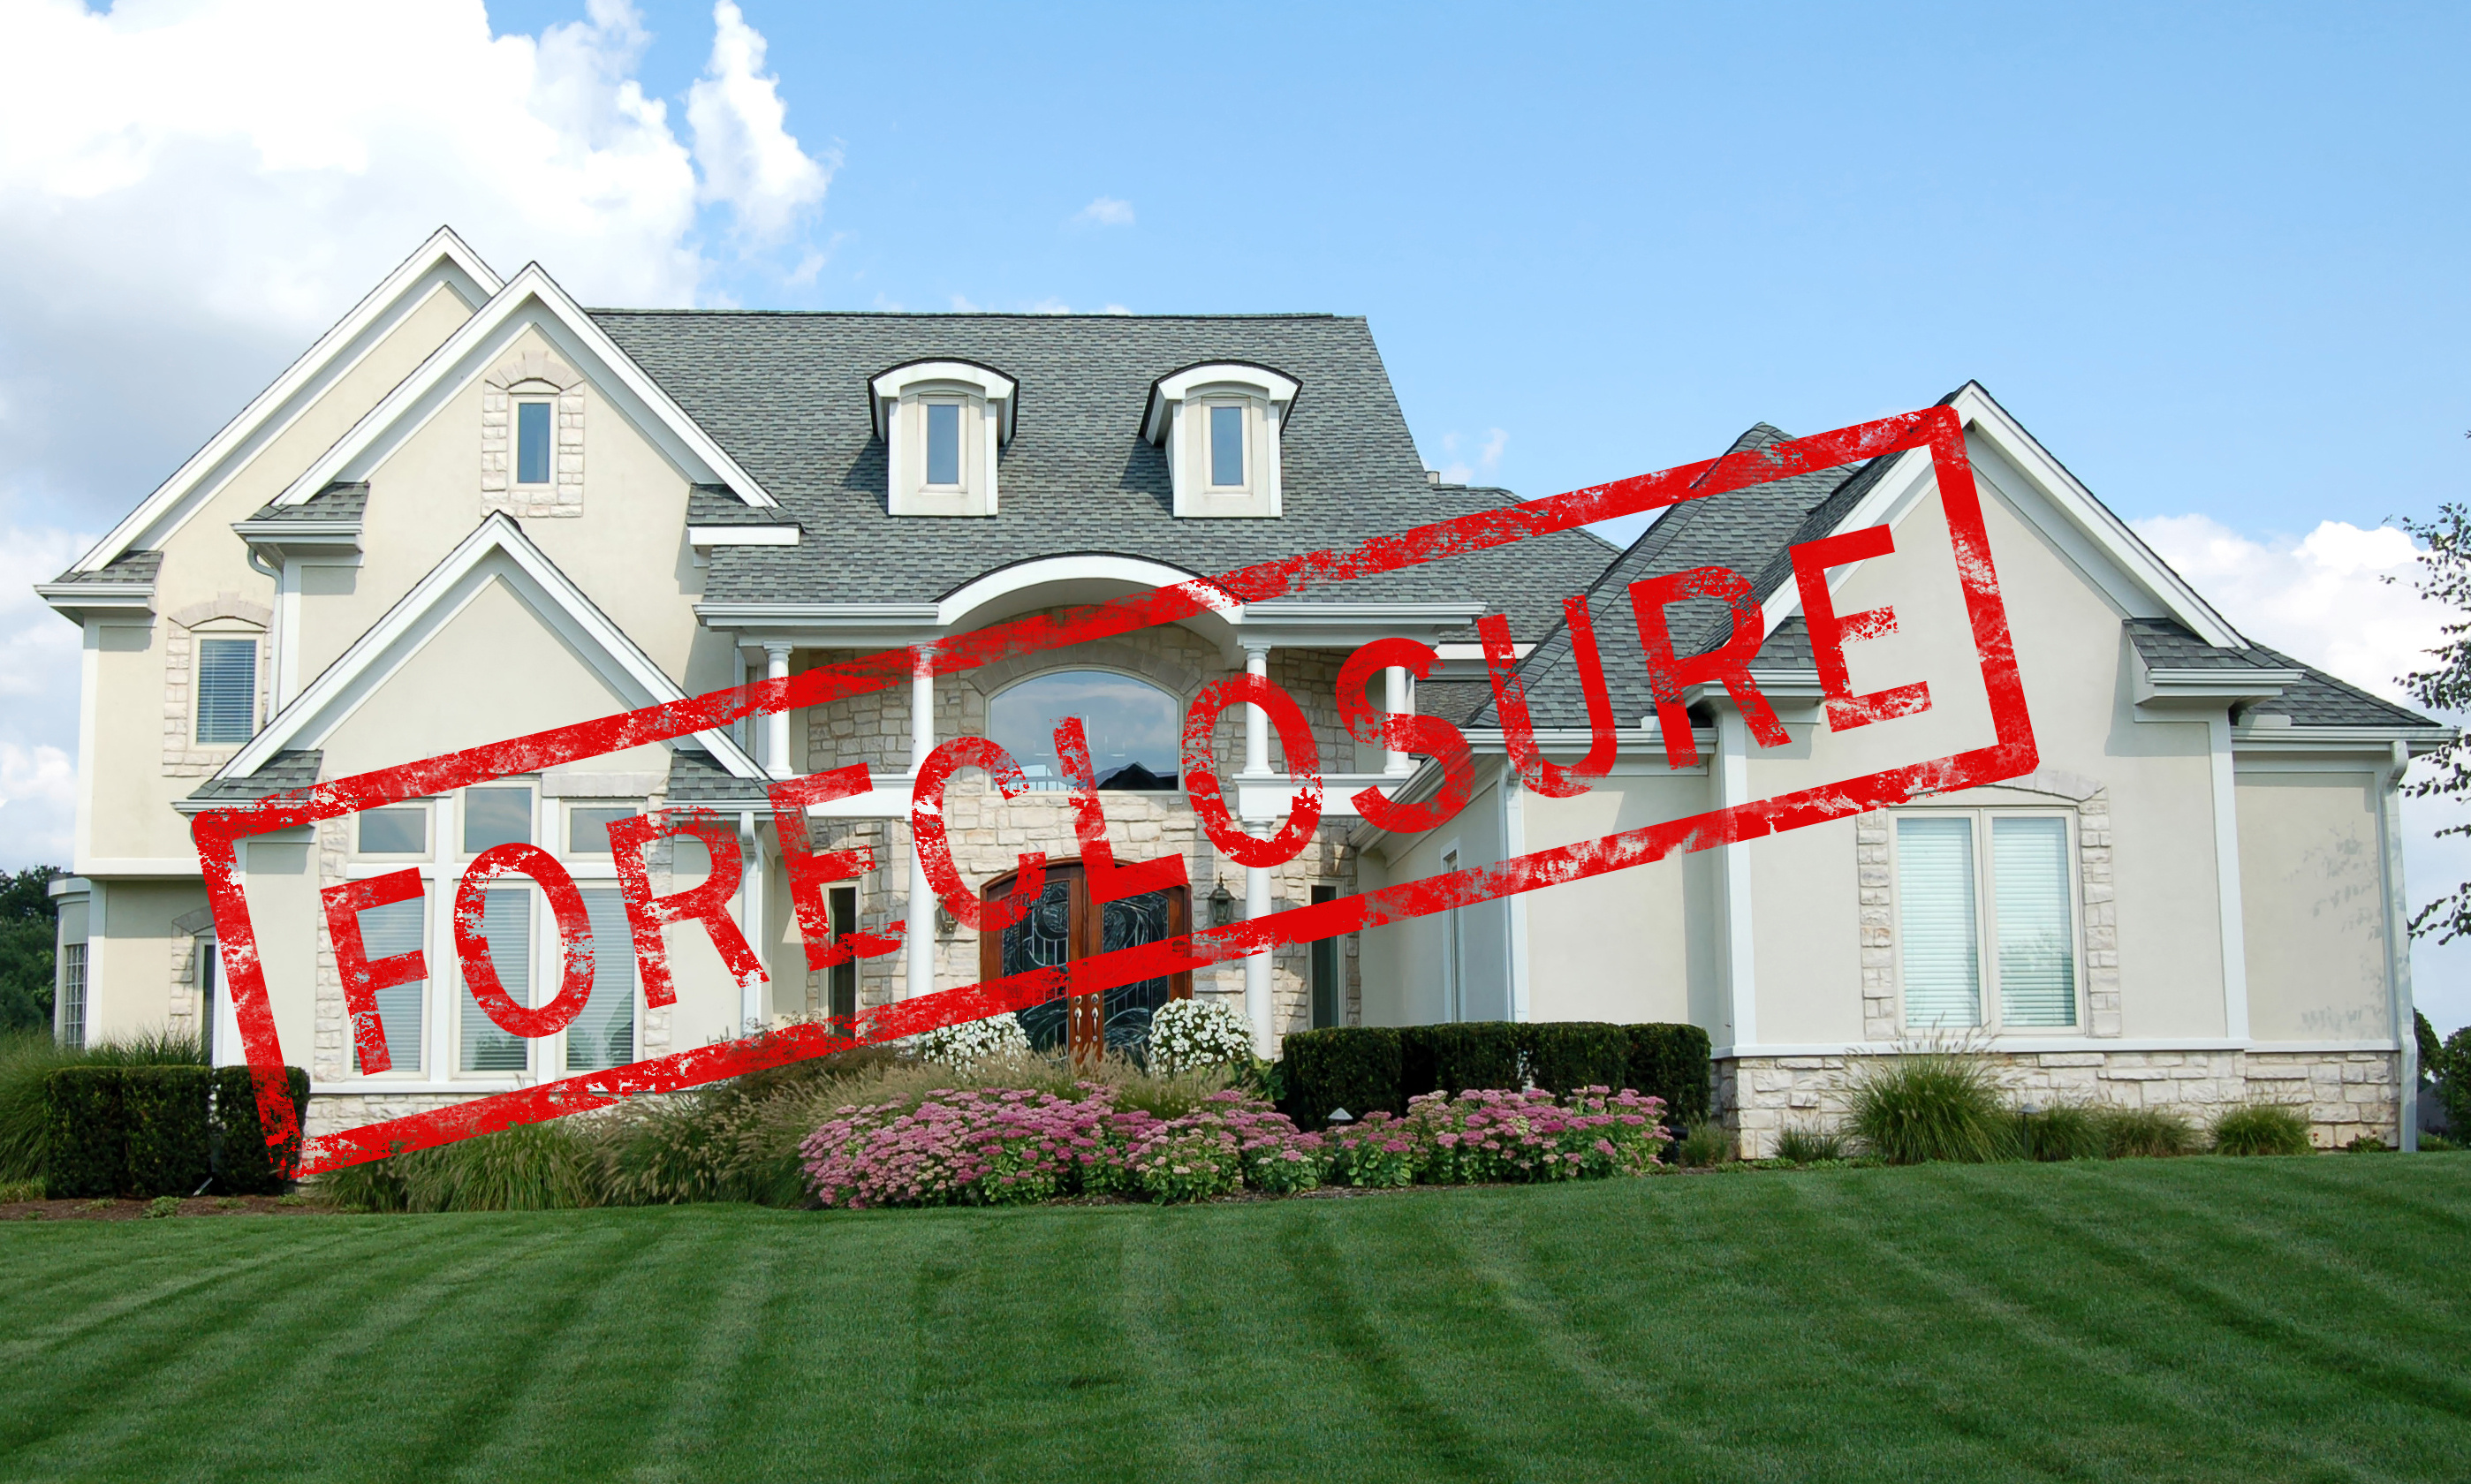 Call Metro Appraisals when you need appraisals of Ada foreclosures